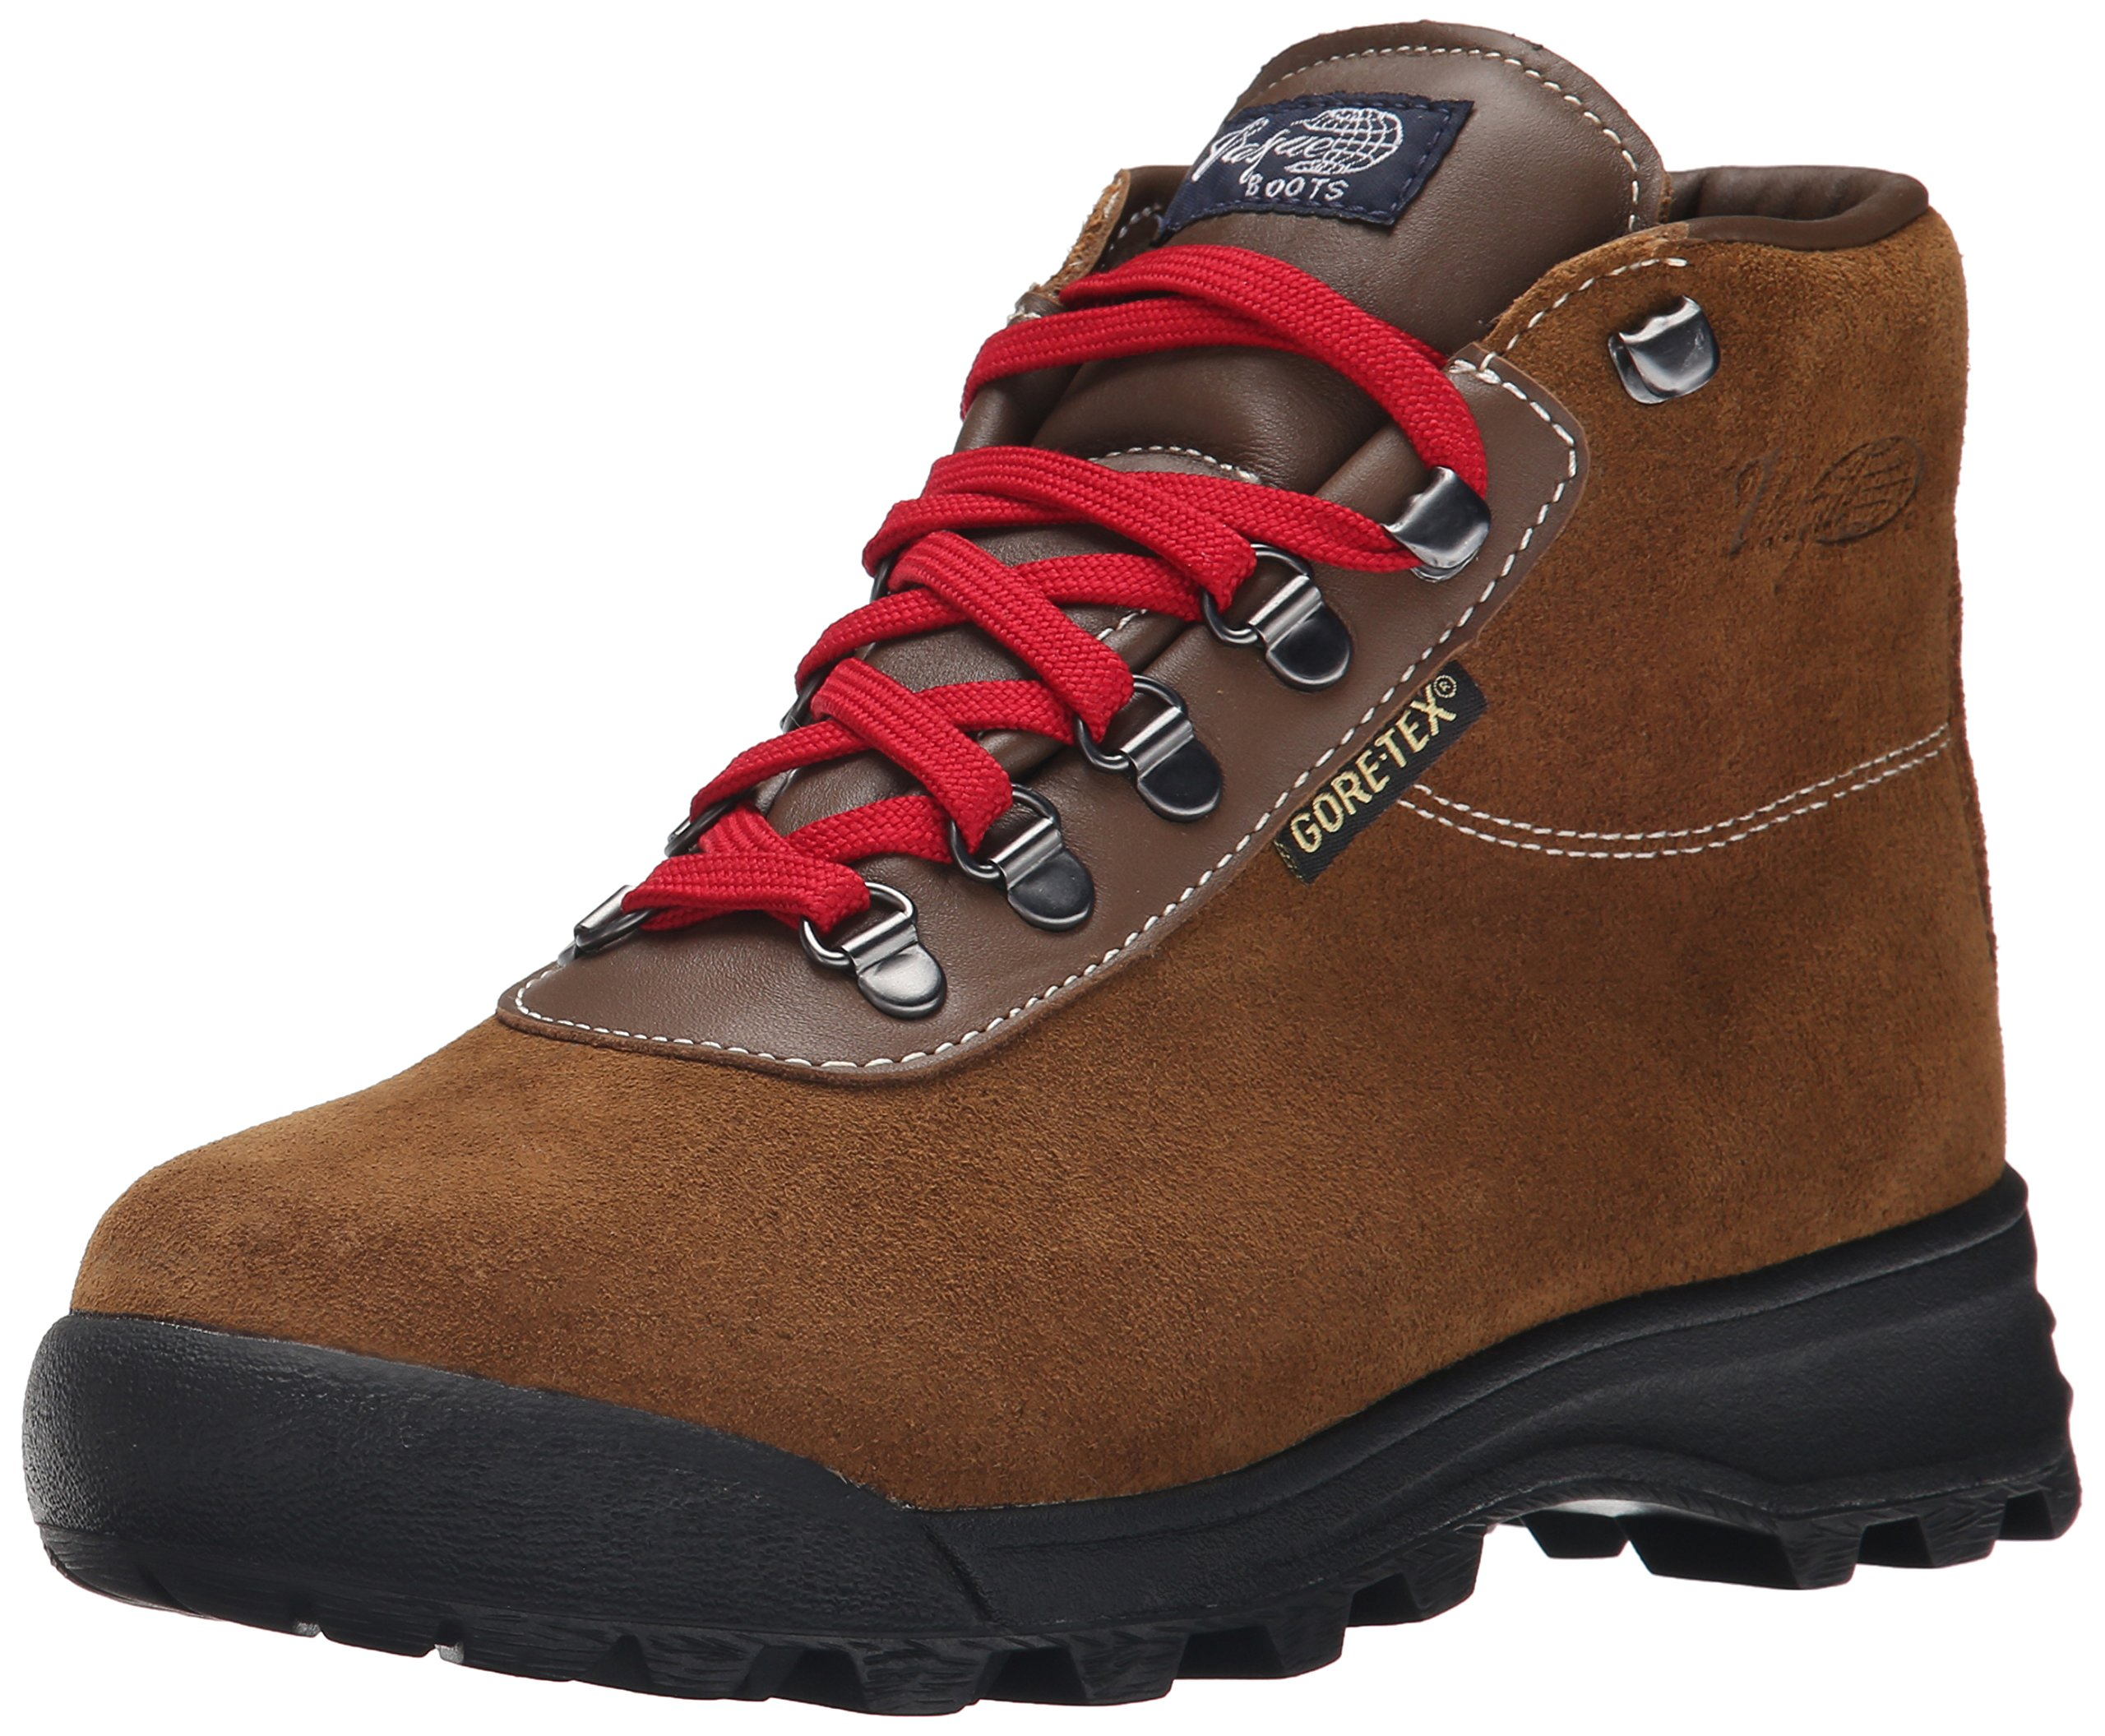 Vasque Women's Sundowner Gore-Tex Backpacking Boot, Hawthorne,8 W US by Vasque